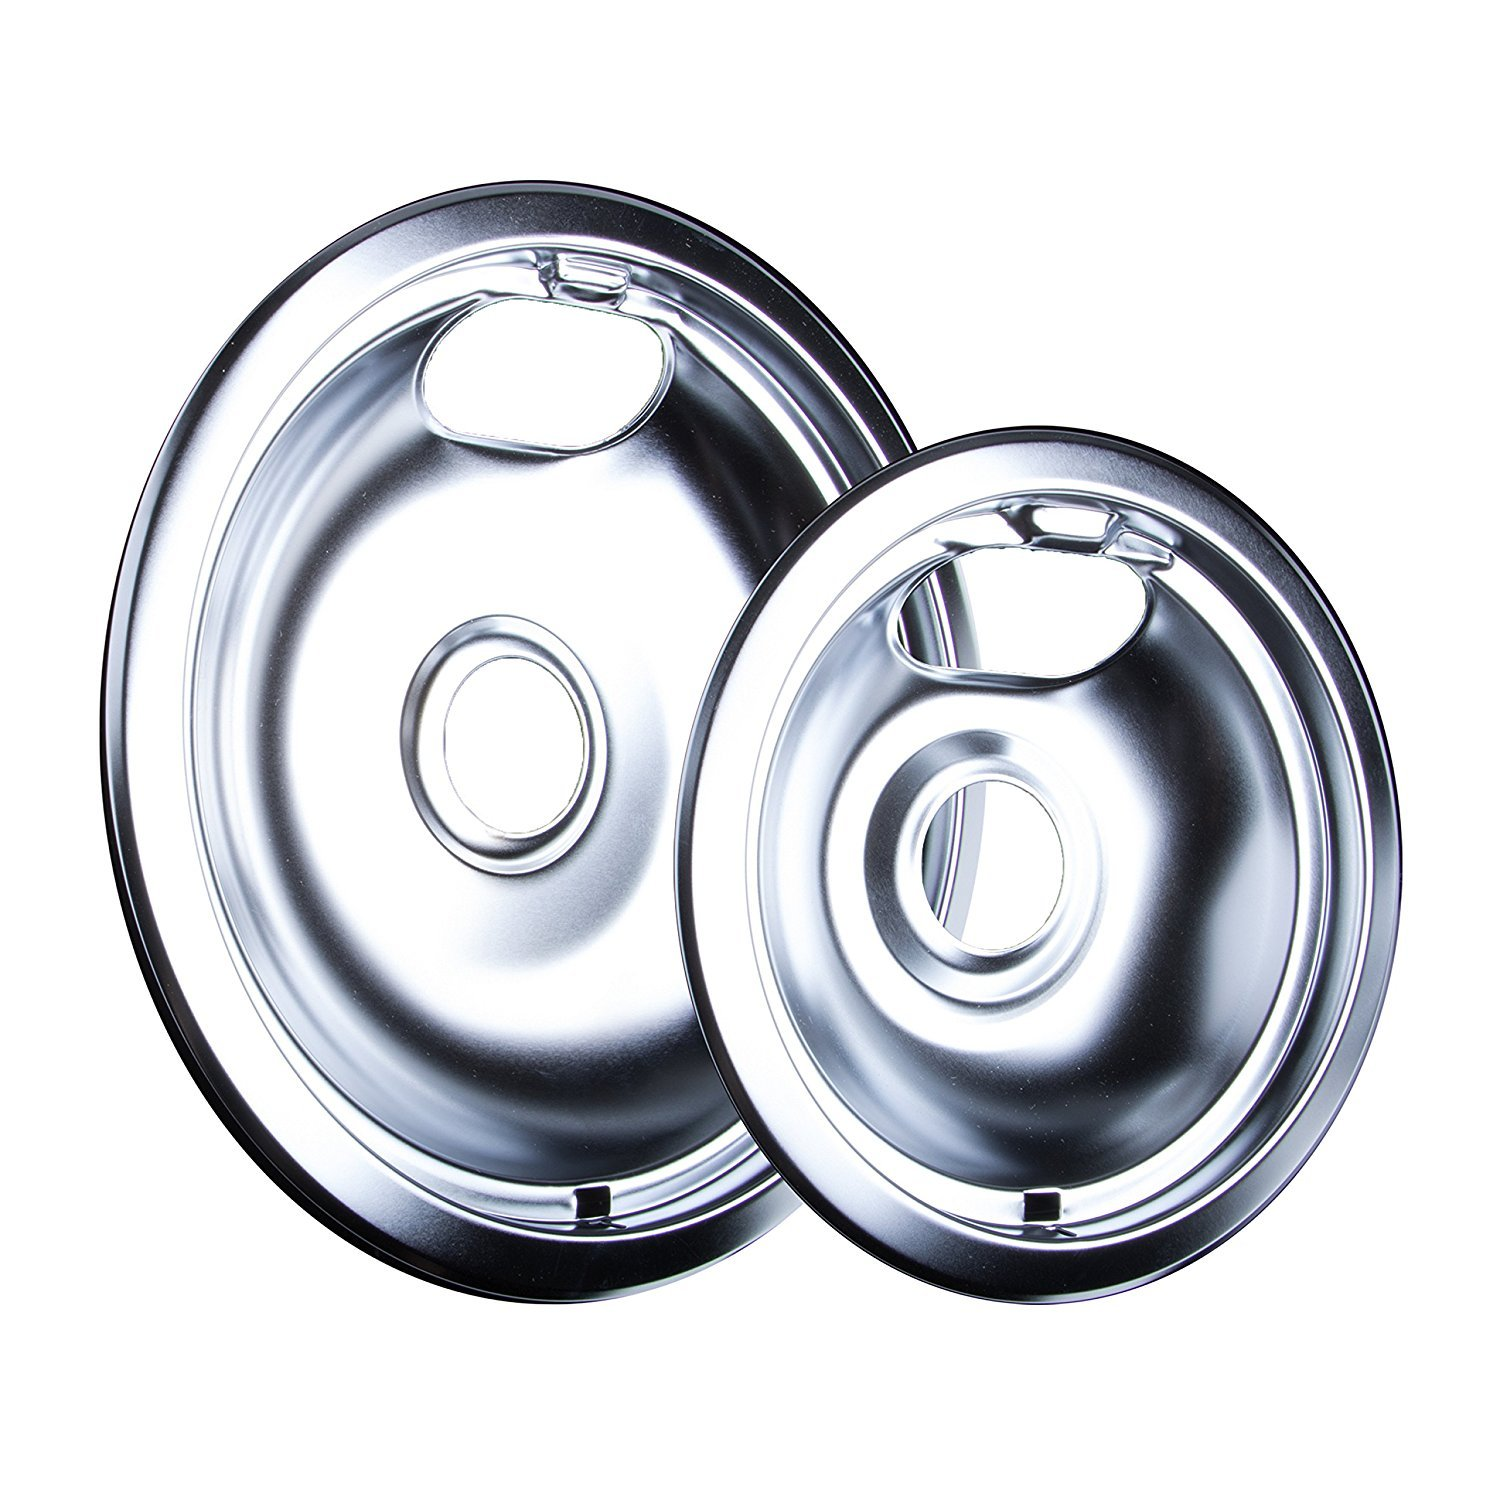 Chrome Drip Pans for Range Kleen 10124XZ Whirlpool W10196405 W10196406 1 Large 8'' 3 Small 6''